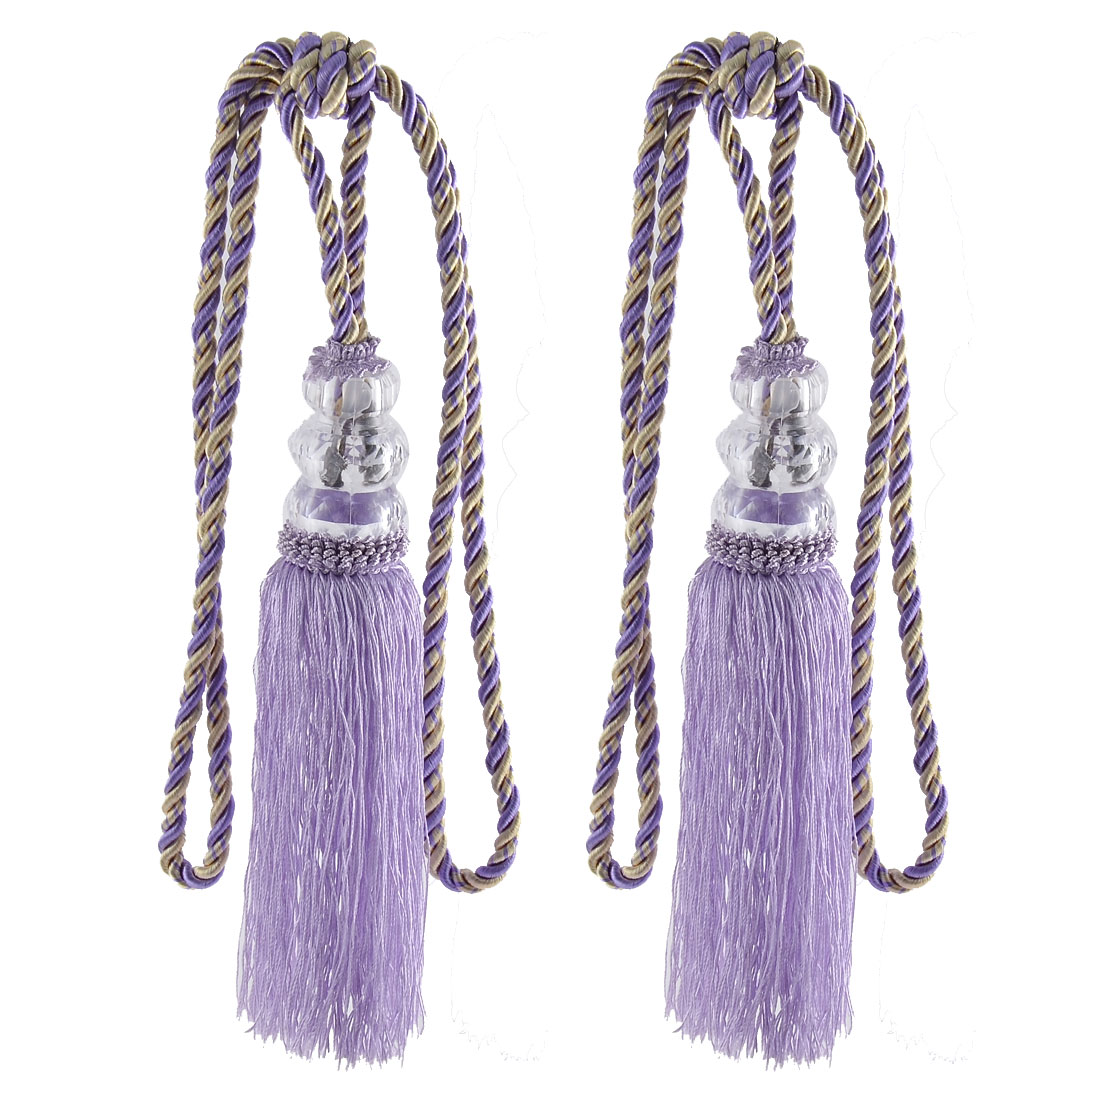 Home Plastic Bead Drapery Curtain Decoration Tassel Fringe Detail Tieback Rope Cord Dark Purple Pair